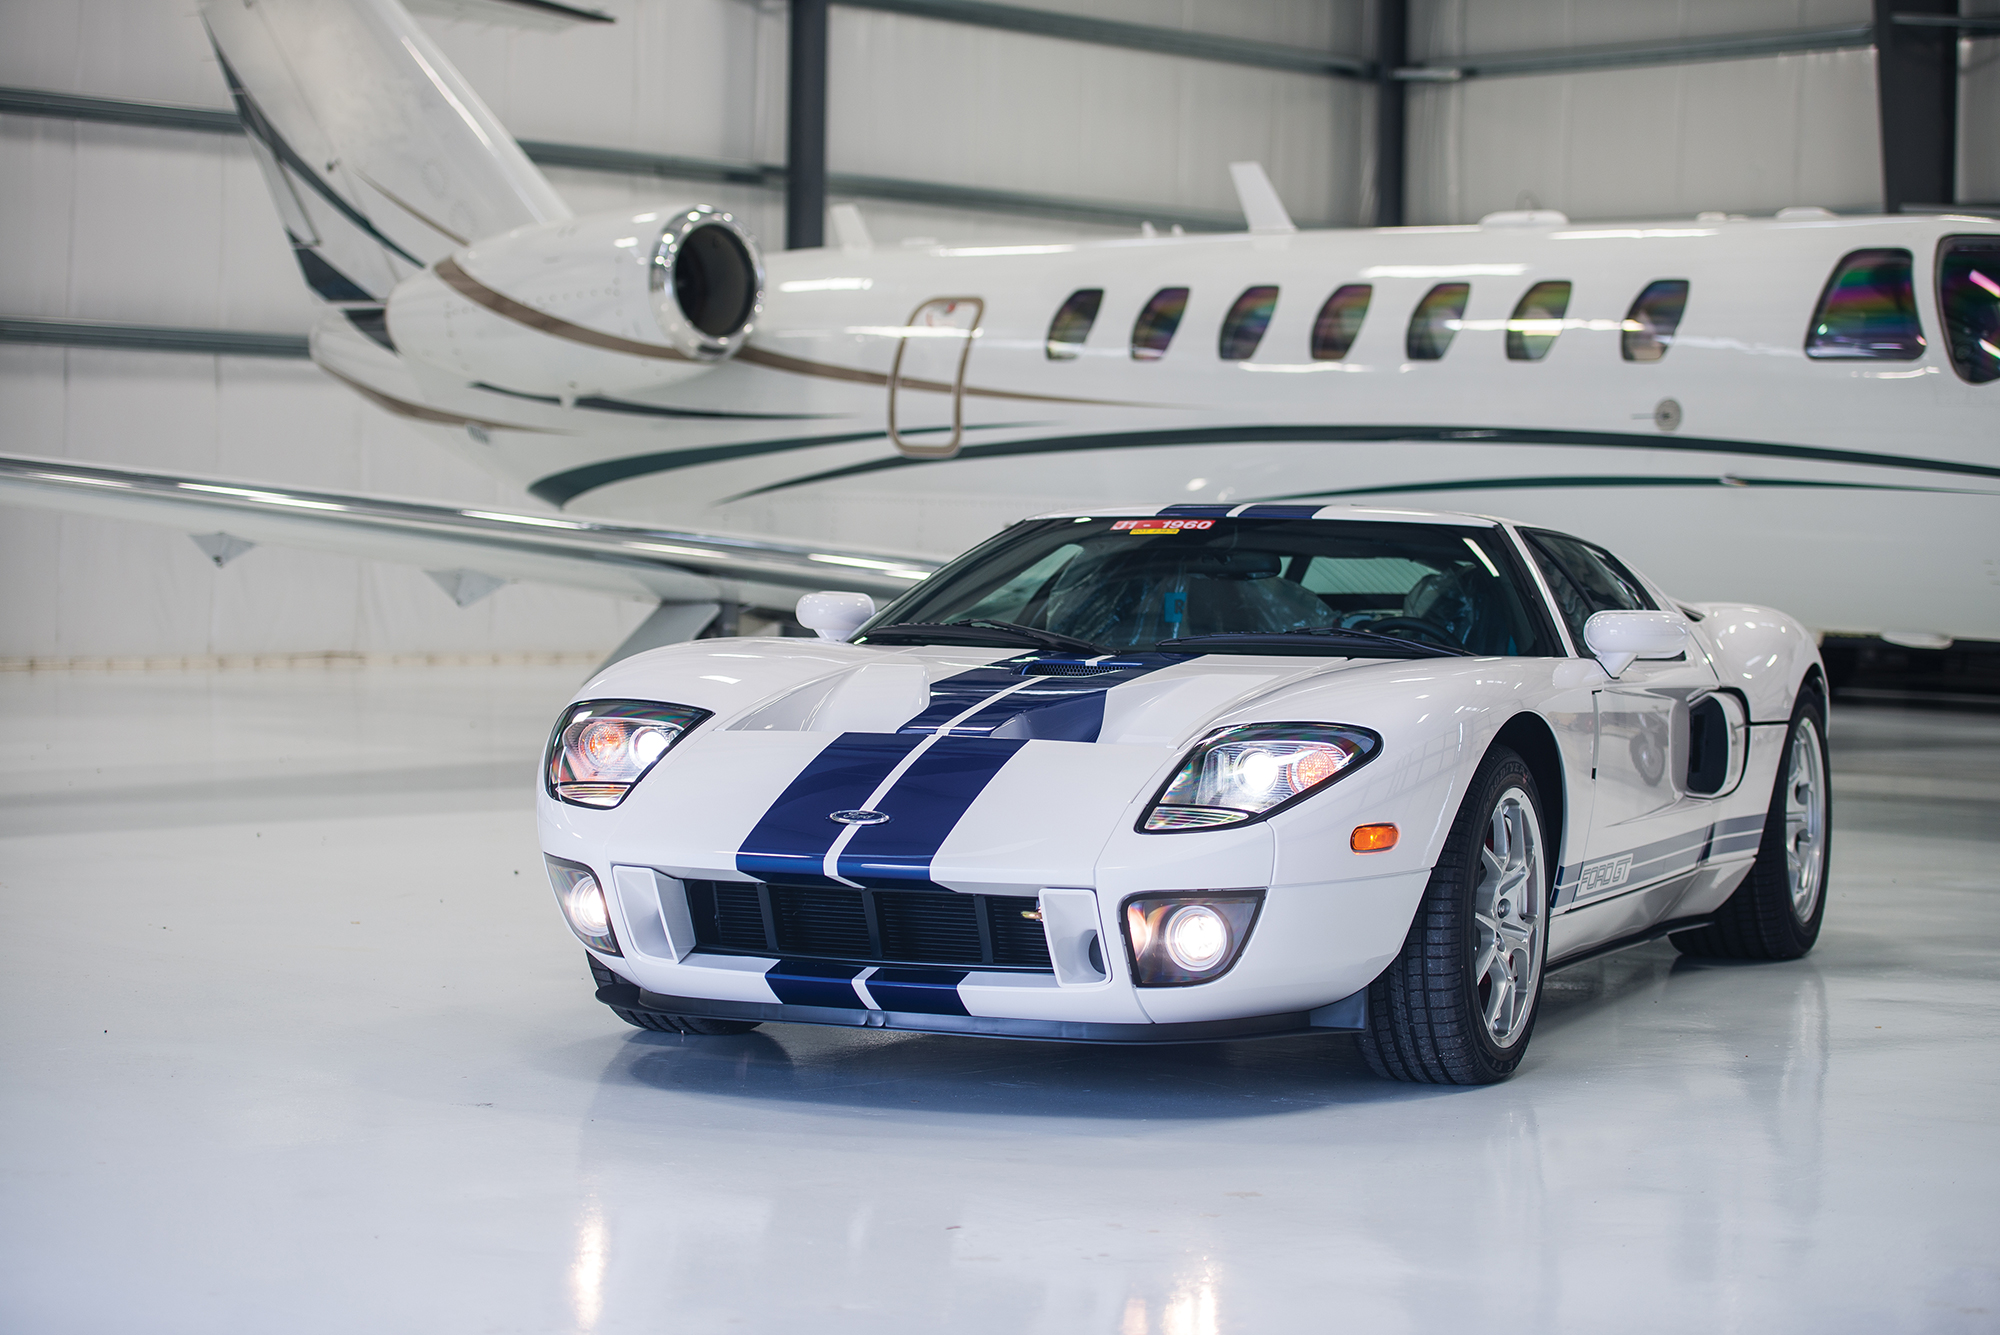 2006 Ford GT with 10.8 miles on the clock heads to auction